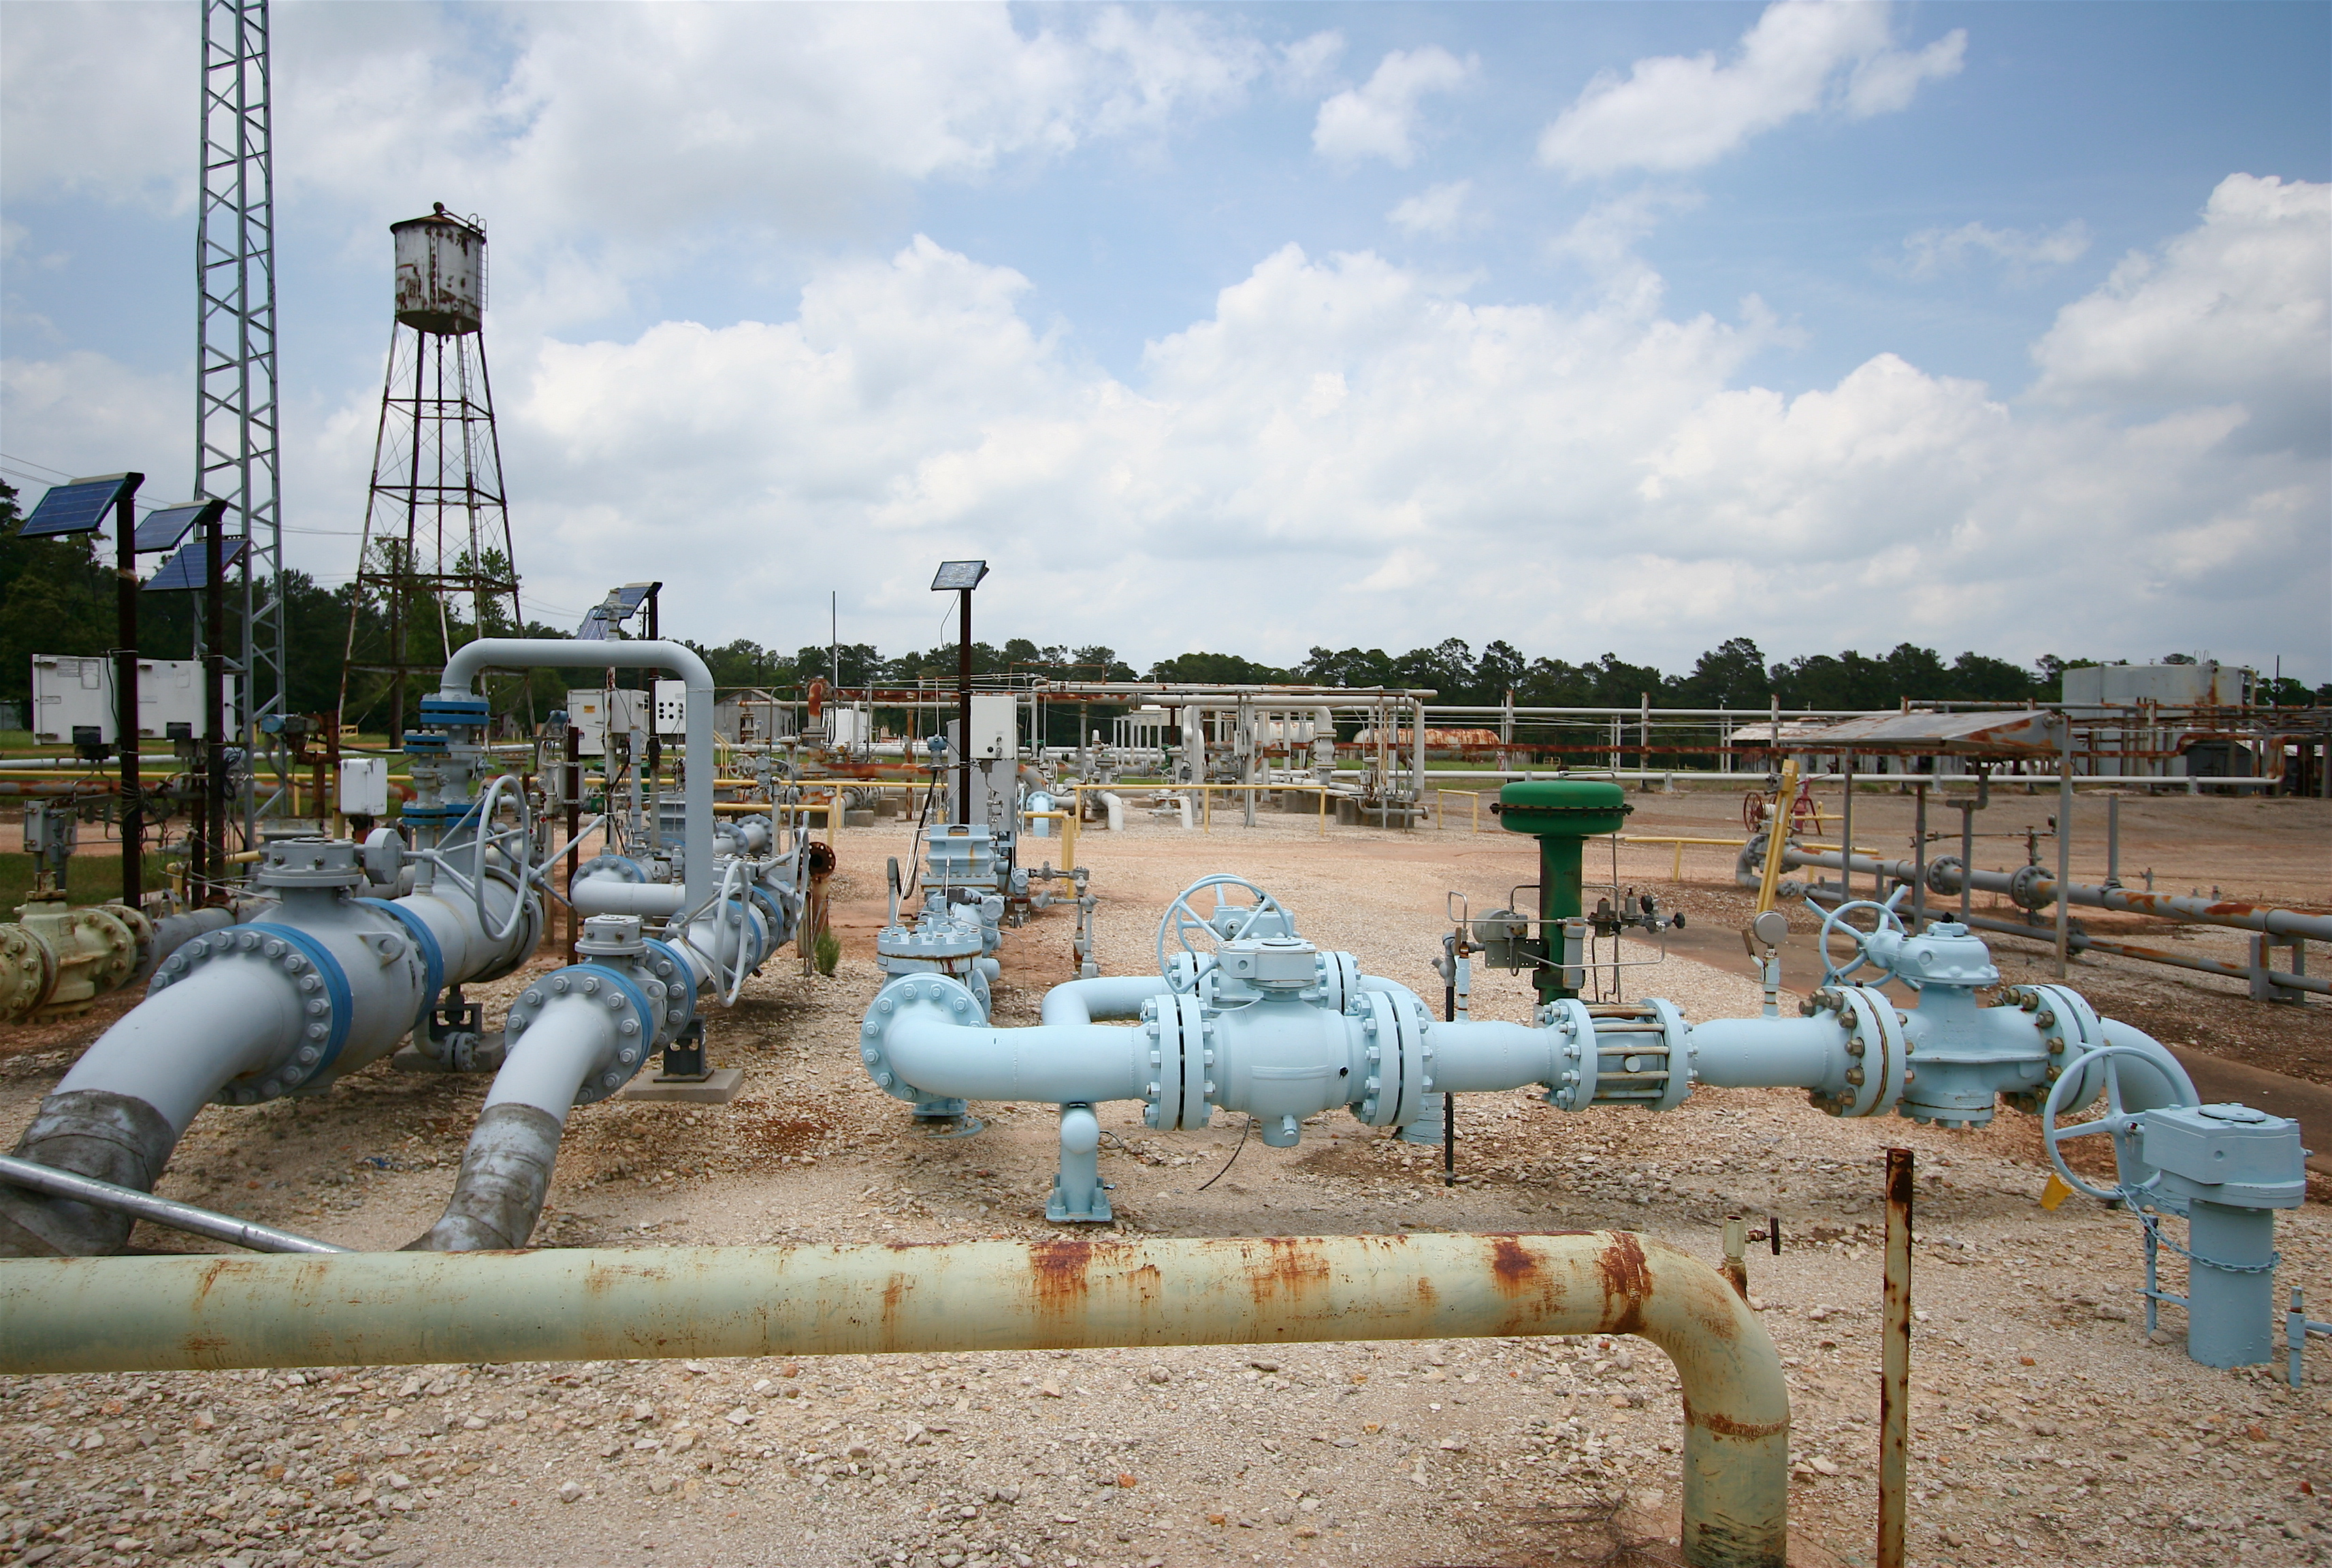 Natural gas infrastructure includes a large number of valves and connectors, such as at this gas processing facility in Montgomery County, Texas. Components such as these may be sources of gas leaks.